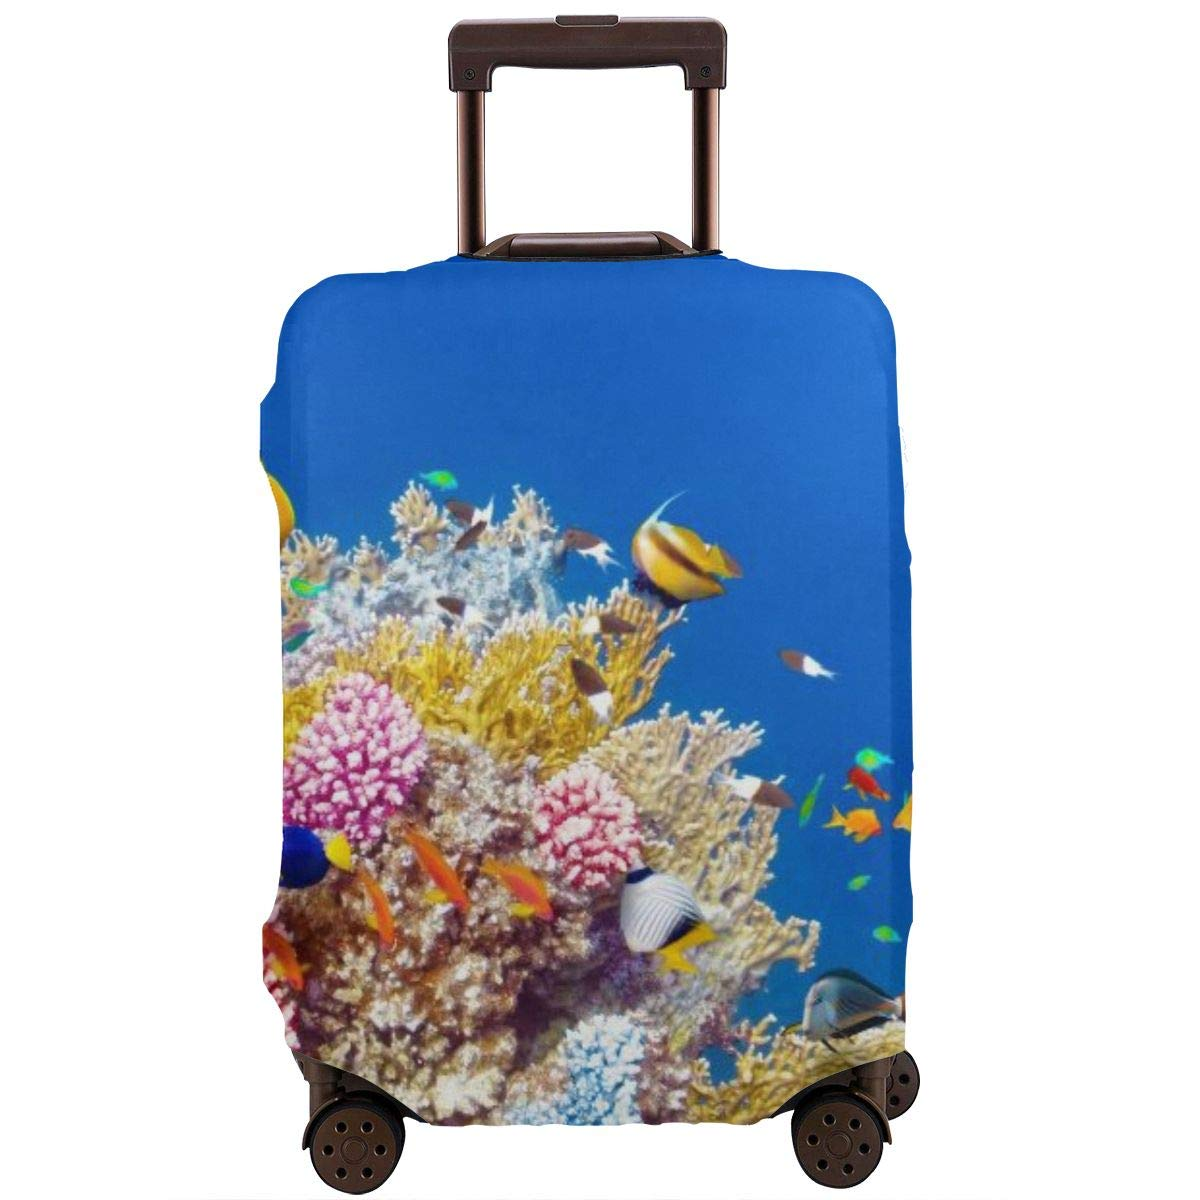 Yuotry Travel Luggage Cover Colorful Coral Floral Zipper Suitcase Protector Luggage with Fixed Buckle Fits 18-32 Inch Luggage XL